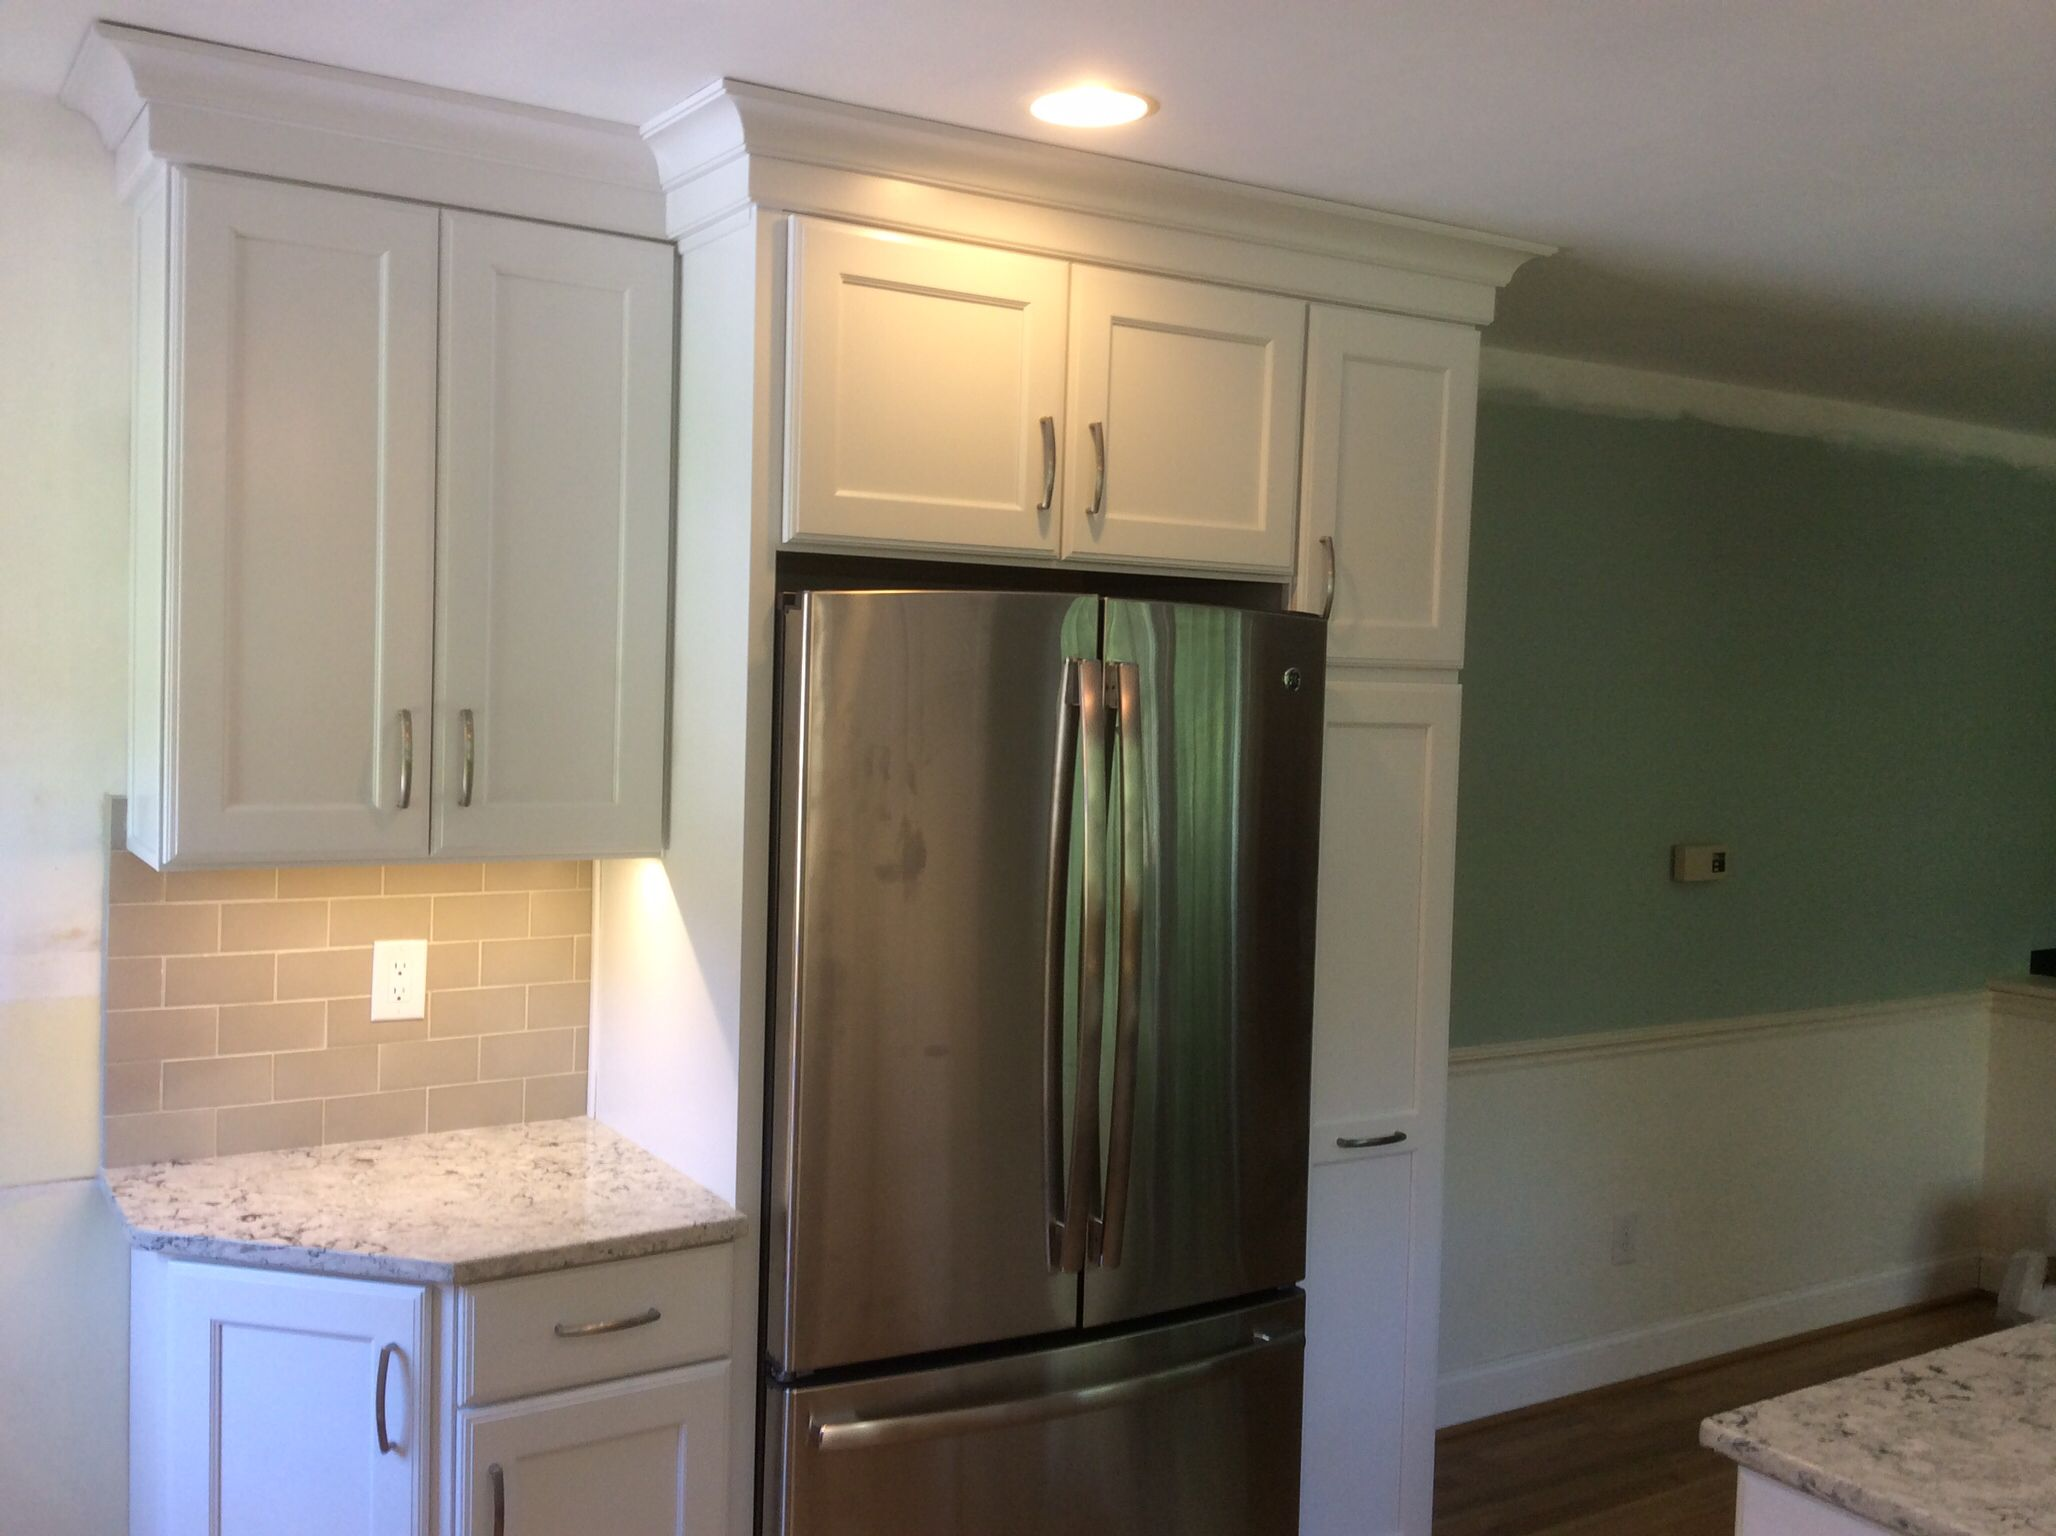 Kitchen Remodel With Merillat Cabinets Starter Molding And Contemporary Crown Camb Kitchen Design Pictures Kitchen And Bath Arabesque Tile Backsplash Kitchen